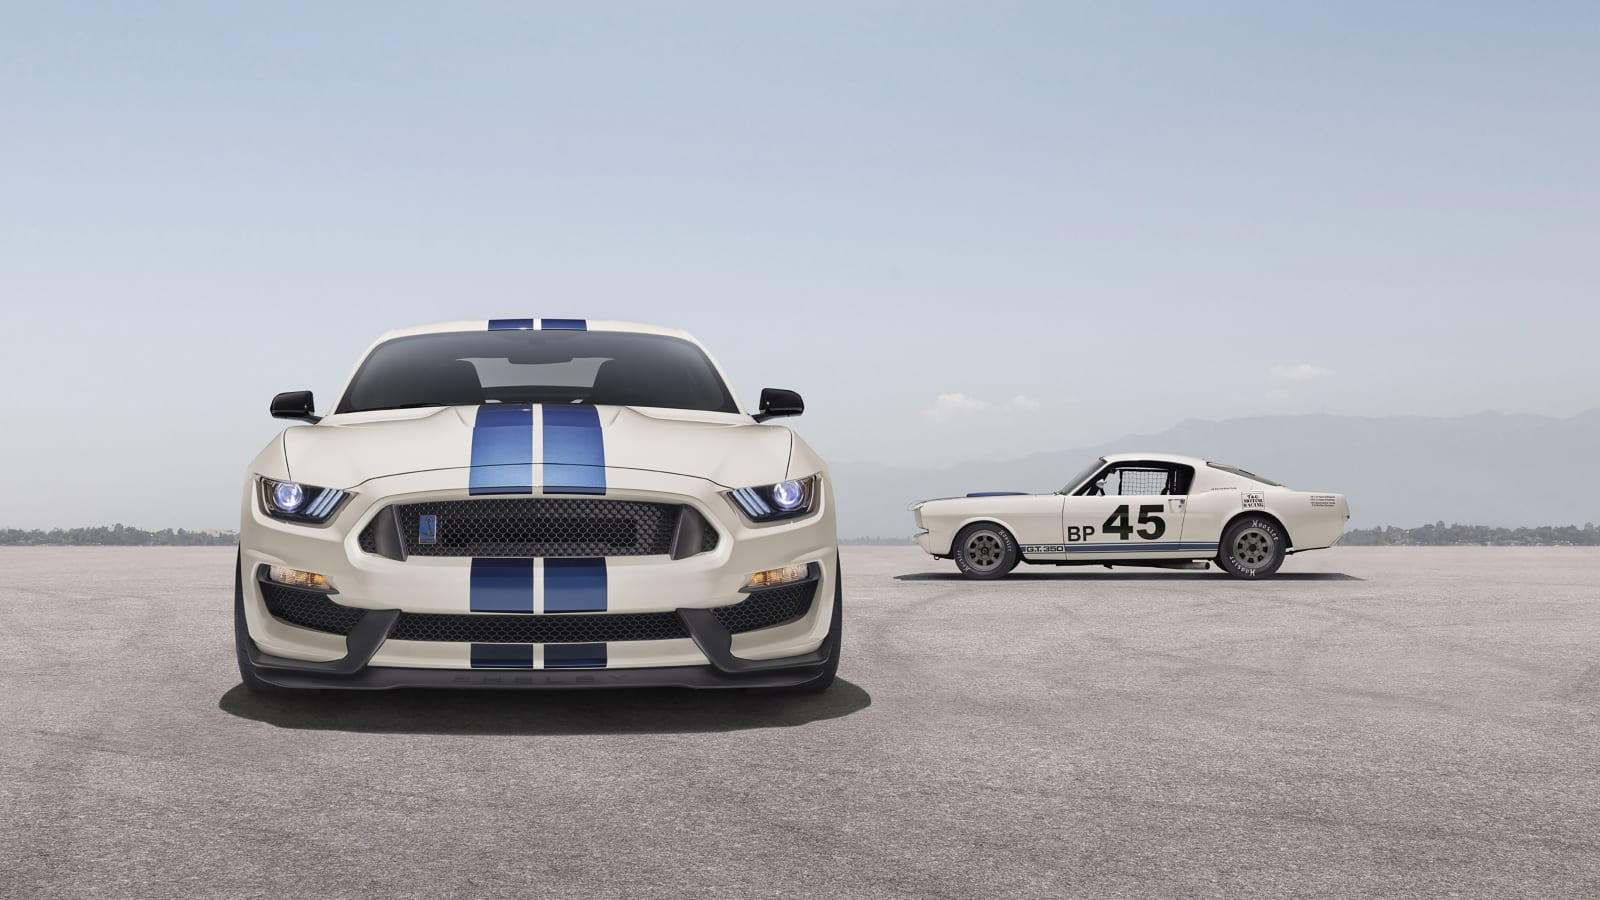 Some Ford Dealerships Want $170,000 For A New Shelby GT500